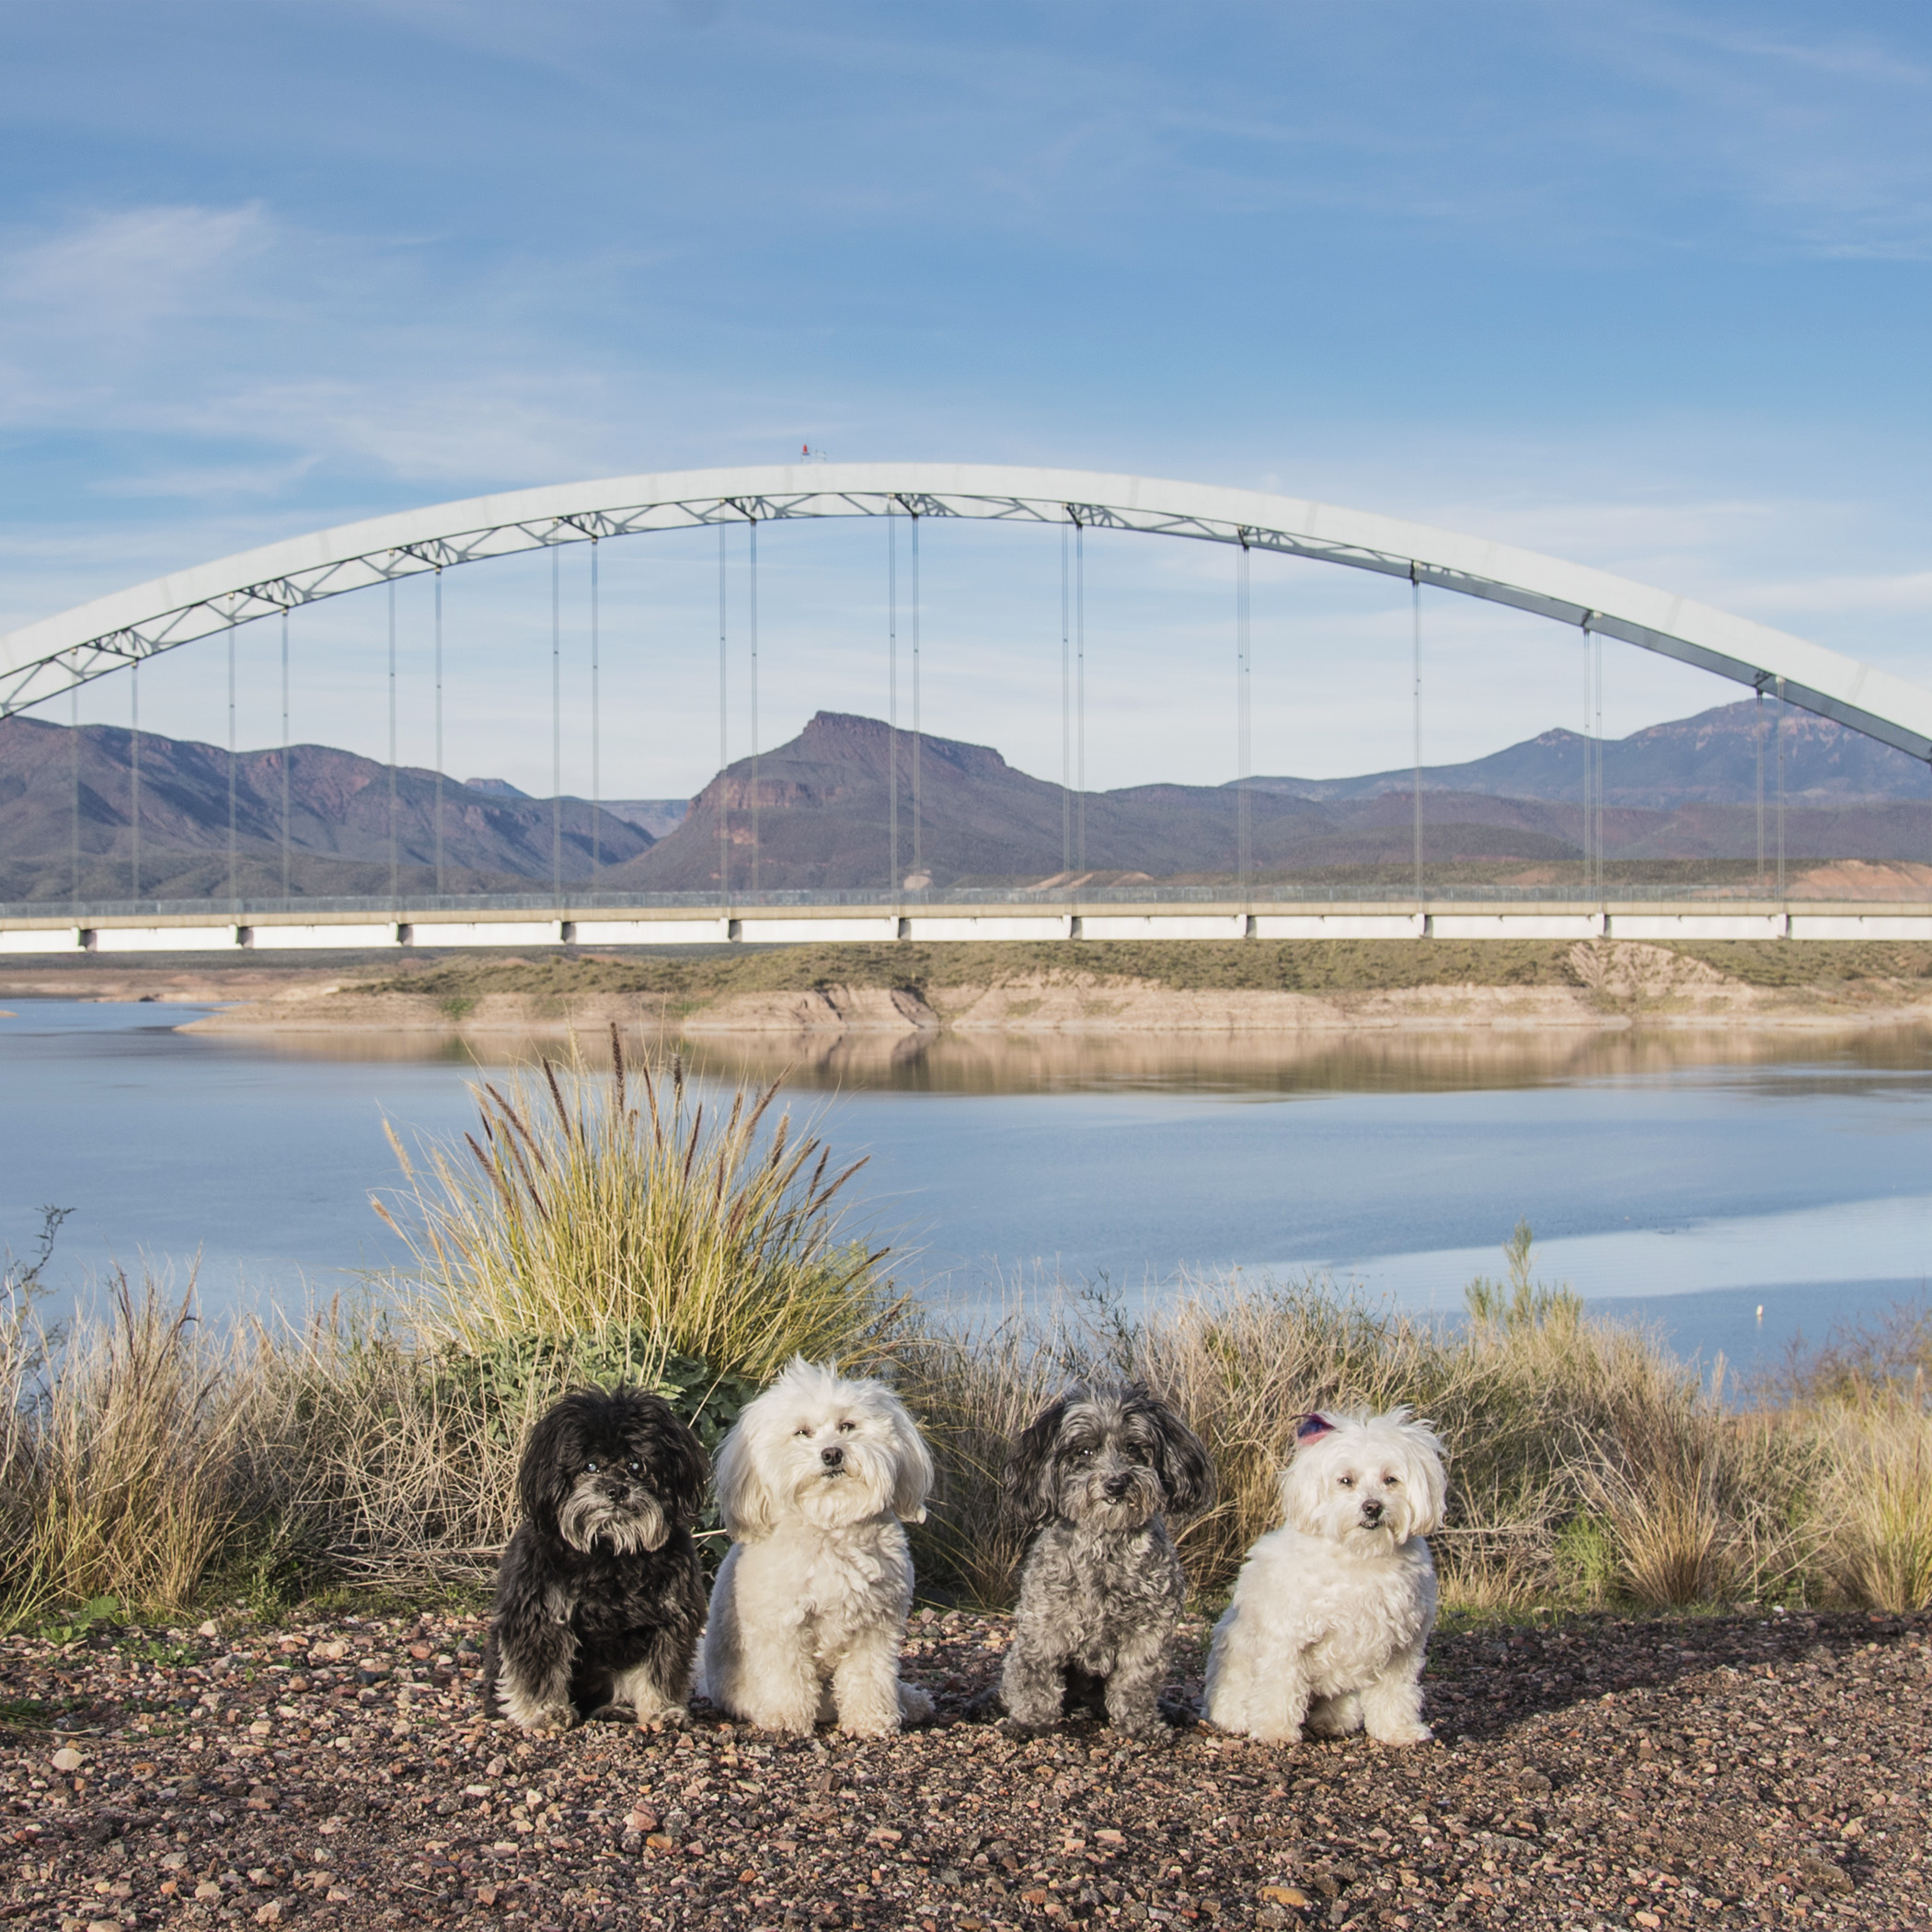 After leaving the ghost town, we drove a long way around the Superstition Mountains to get to Lake Roosevelt. It's similar to the Hoover Dam that we saw last month, but a lot smaller! Although, it's bridge was better looking!